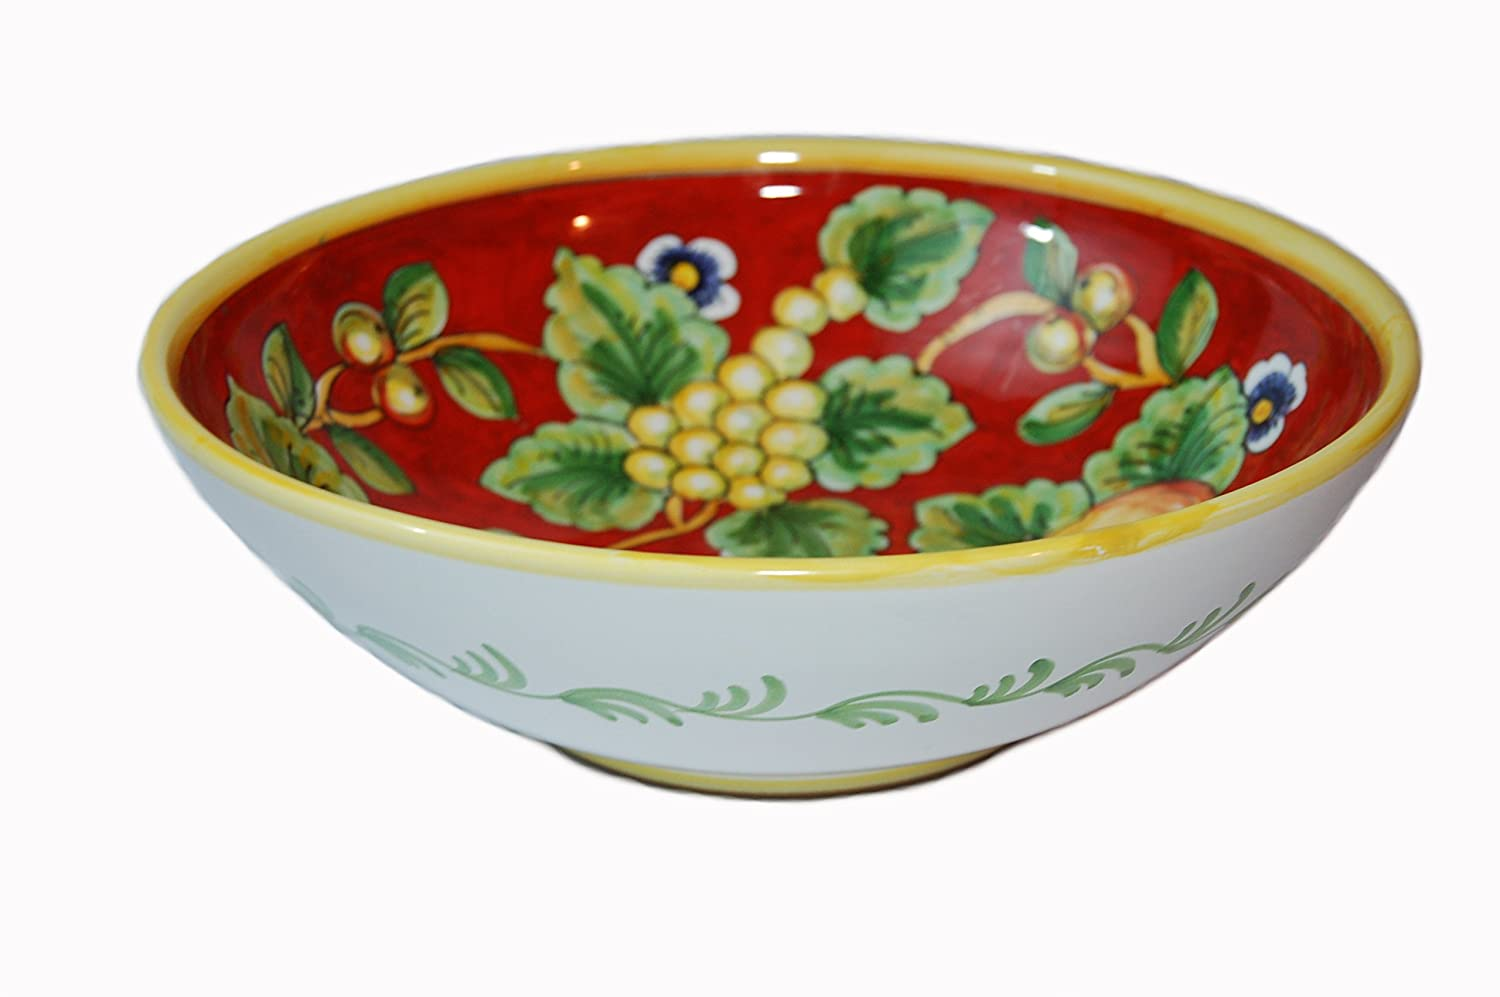 Frutta Rossa Hand Painted Ceramic Large Serving Bowl Made in Italy